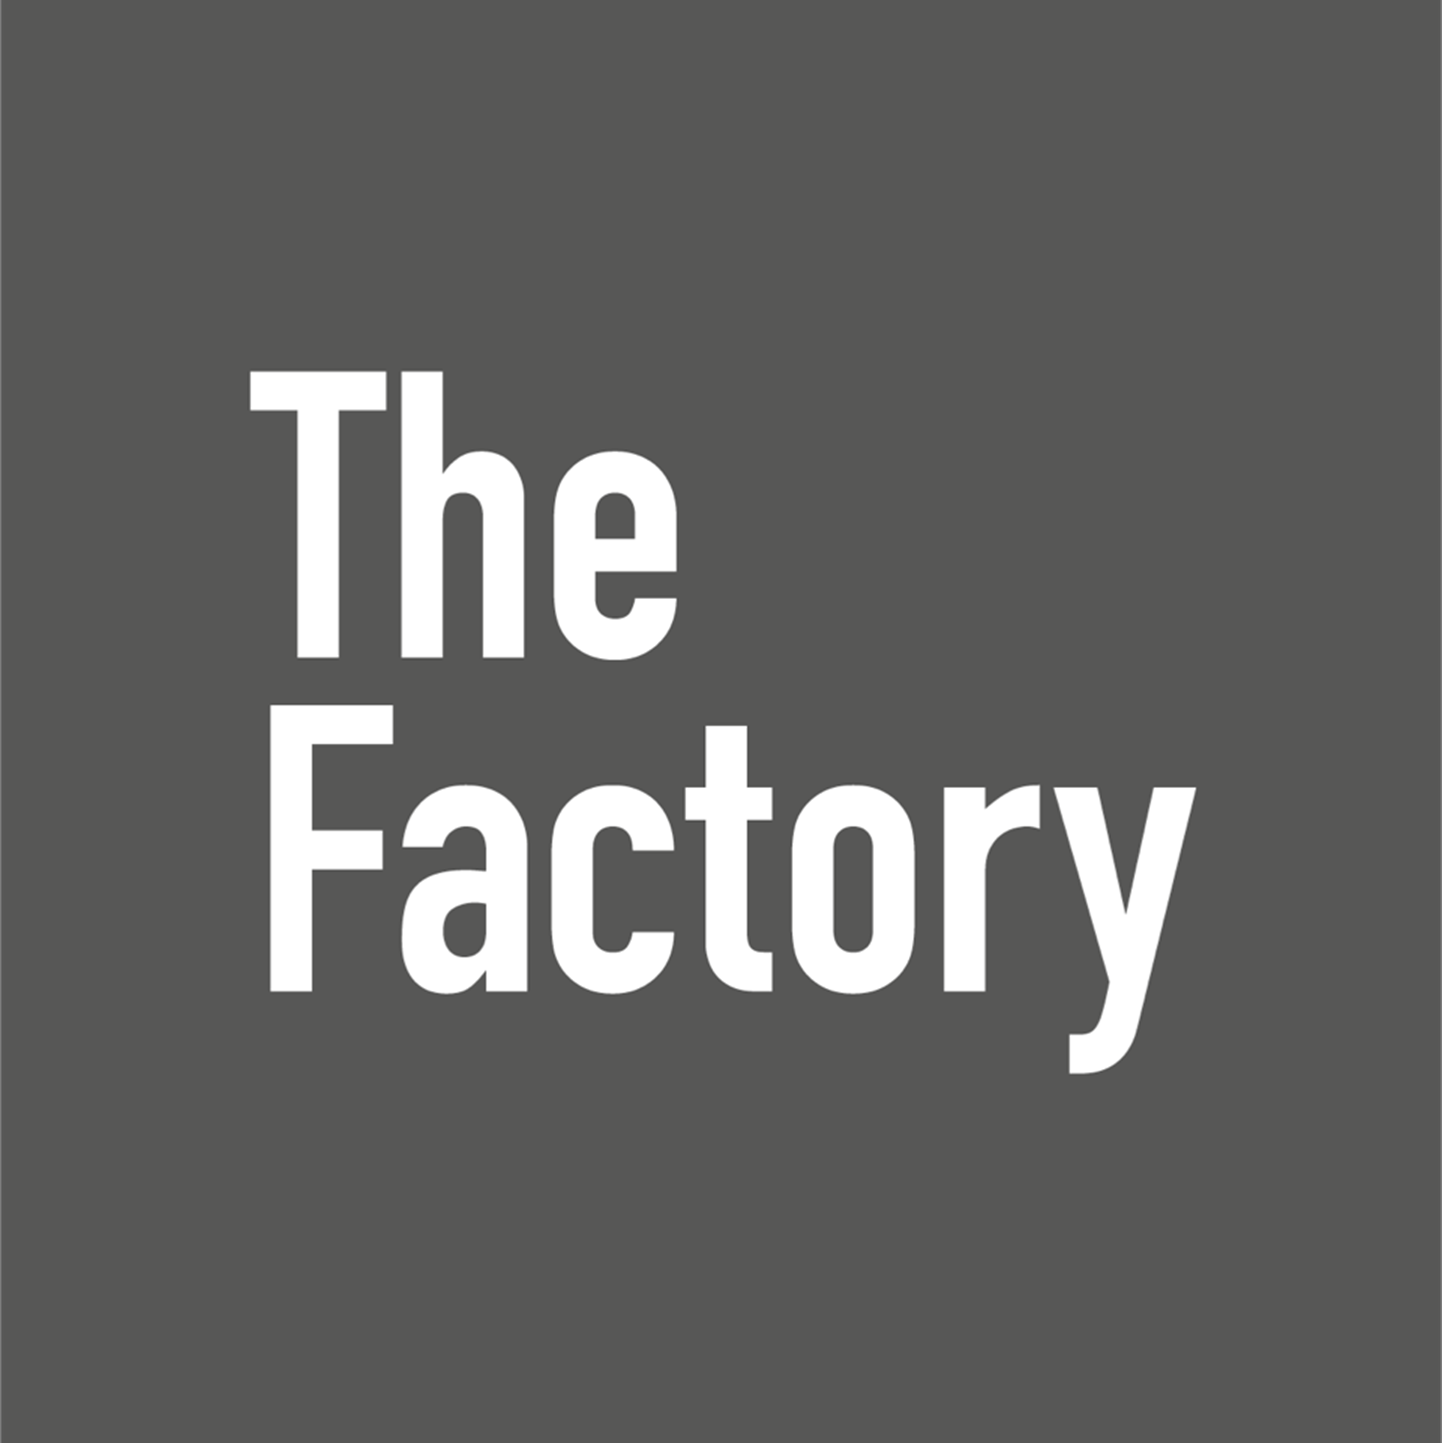 TheFactory is a mentorship-lead early stage development program in Oslo. Throughout the program, that last for 12 weeks, you will be connected with great business mentors, market experts from different verticals, but most importantly a systematic connections with seasoned entrepreneurs and investors to accelerate your business.